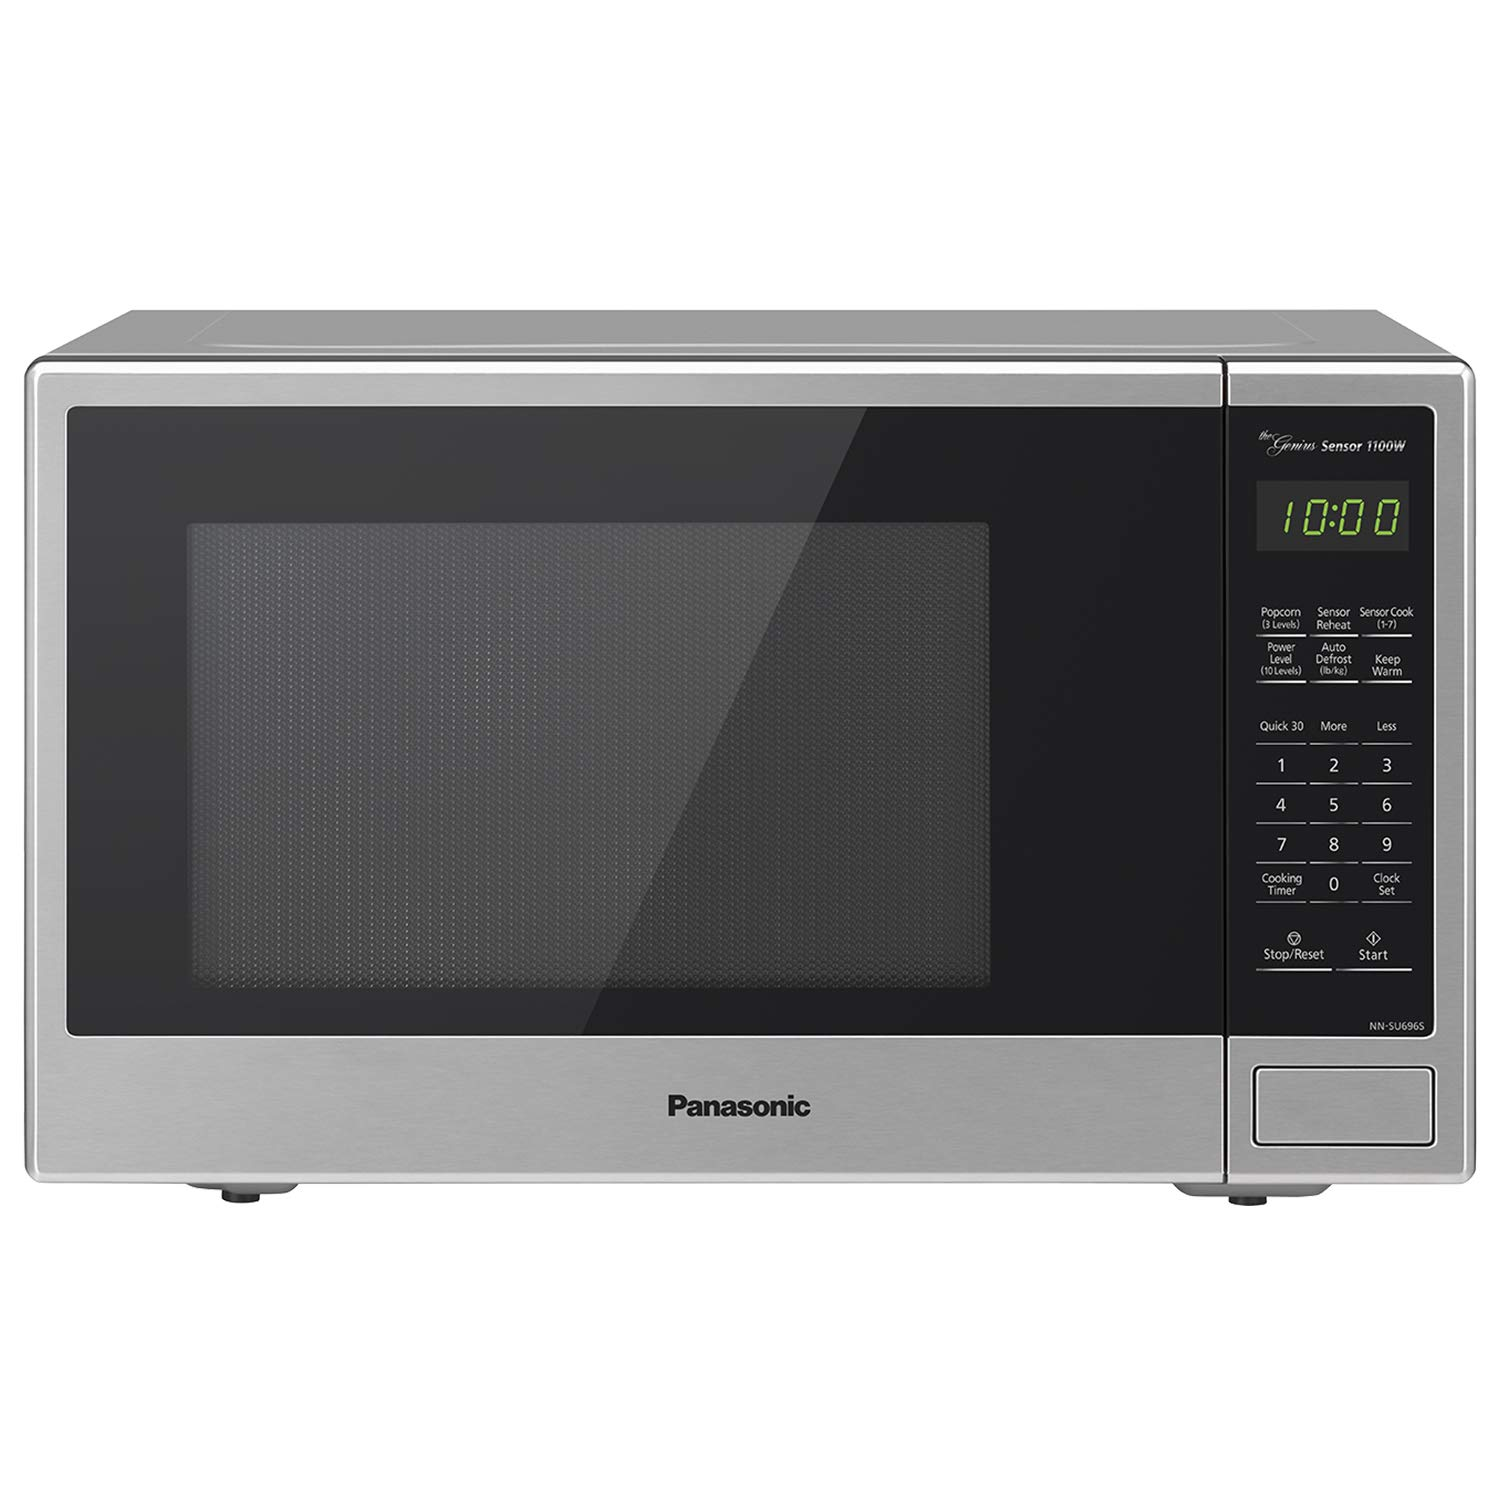 Panasonic Countertop Microwave Oven with Genius Sensor Cooking, Quick 30sec, Popcorn Button, Child Safety Lock and 1100 Watts of Cooking Power - NN-SU696S - 1.3 cu. ft (Stainless Steel) by Panasonic